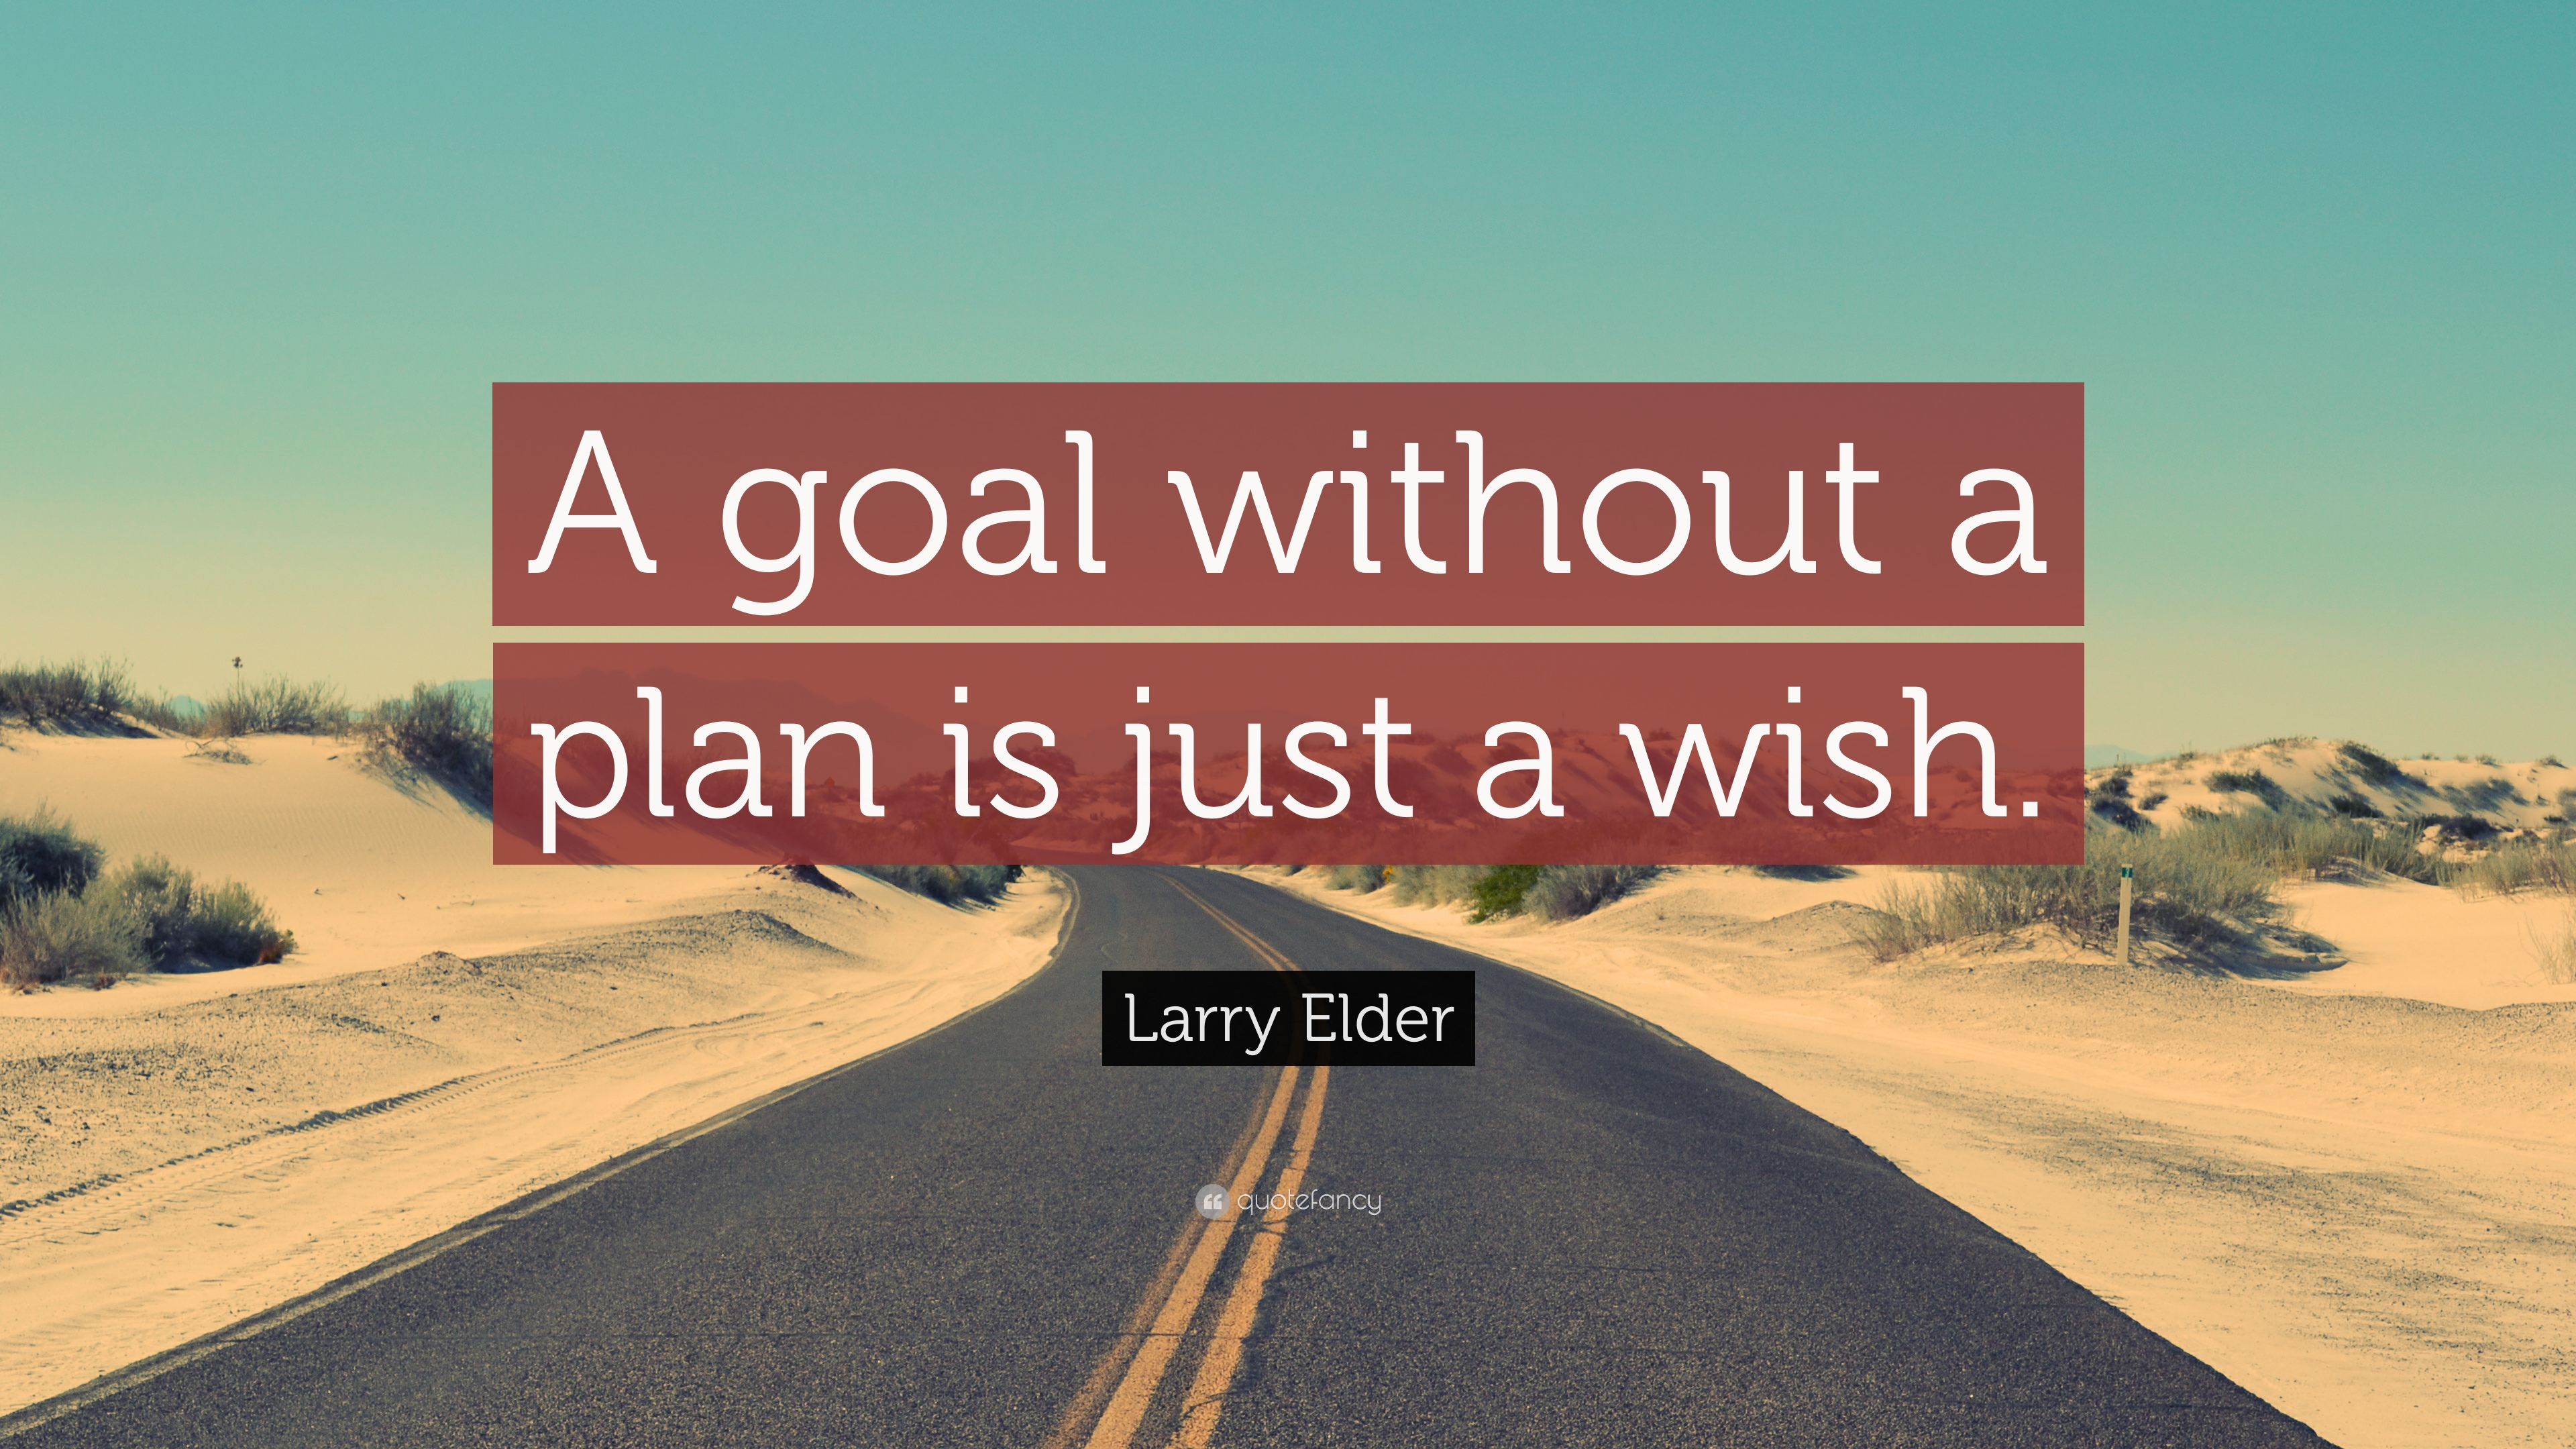 Merveilleux Larry Elder Quote: U201cA Goal Without A Plan Is Just A Wish.u201d